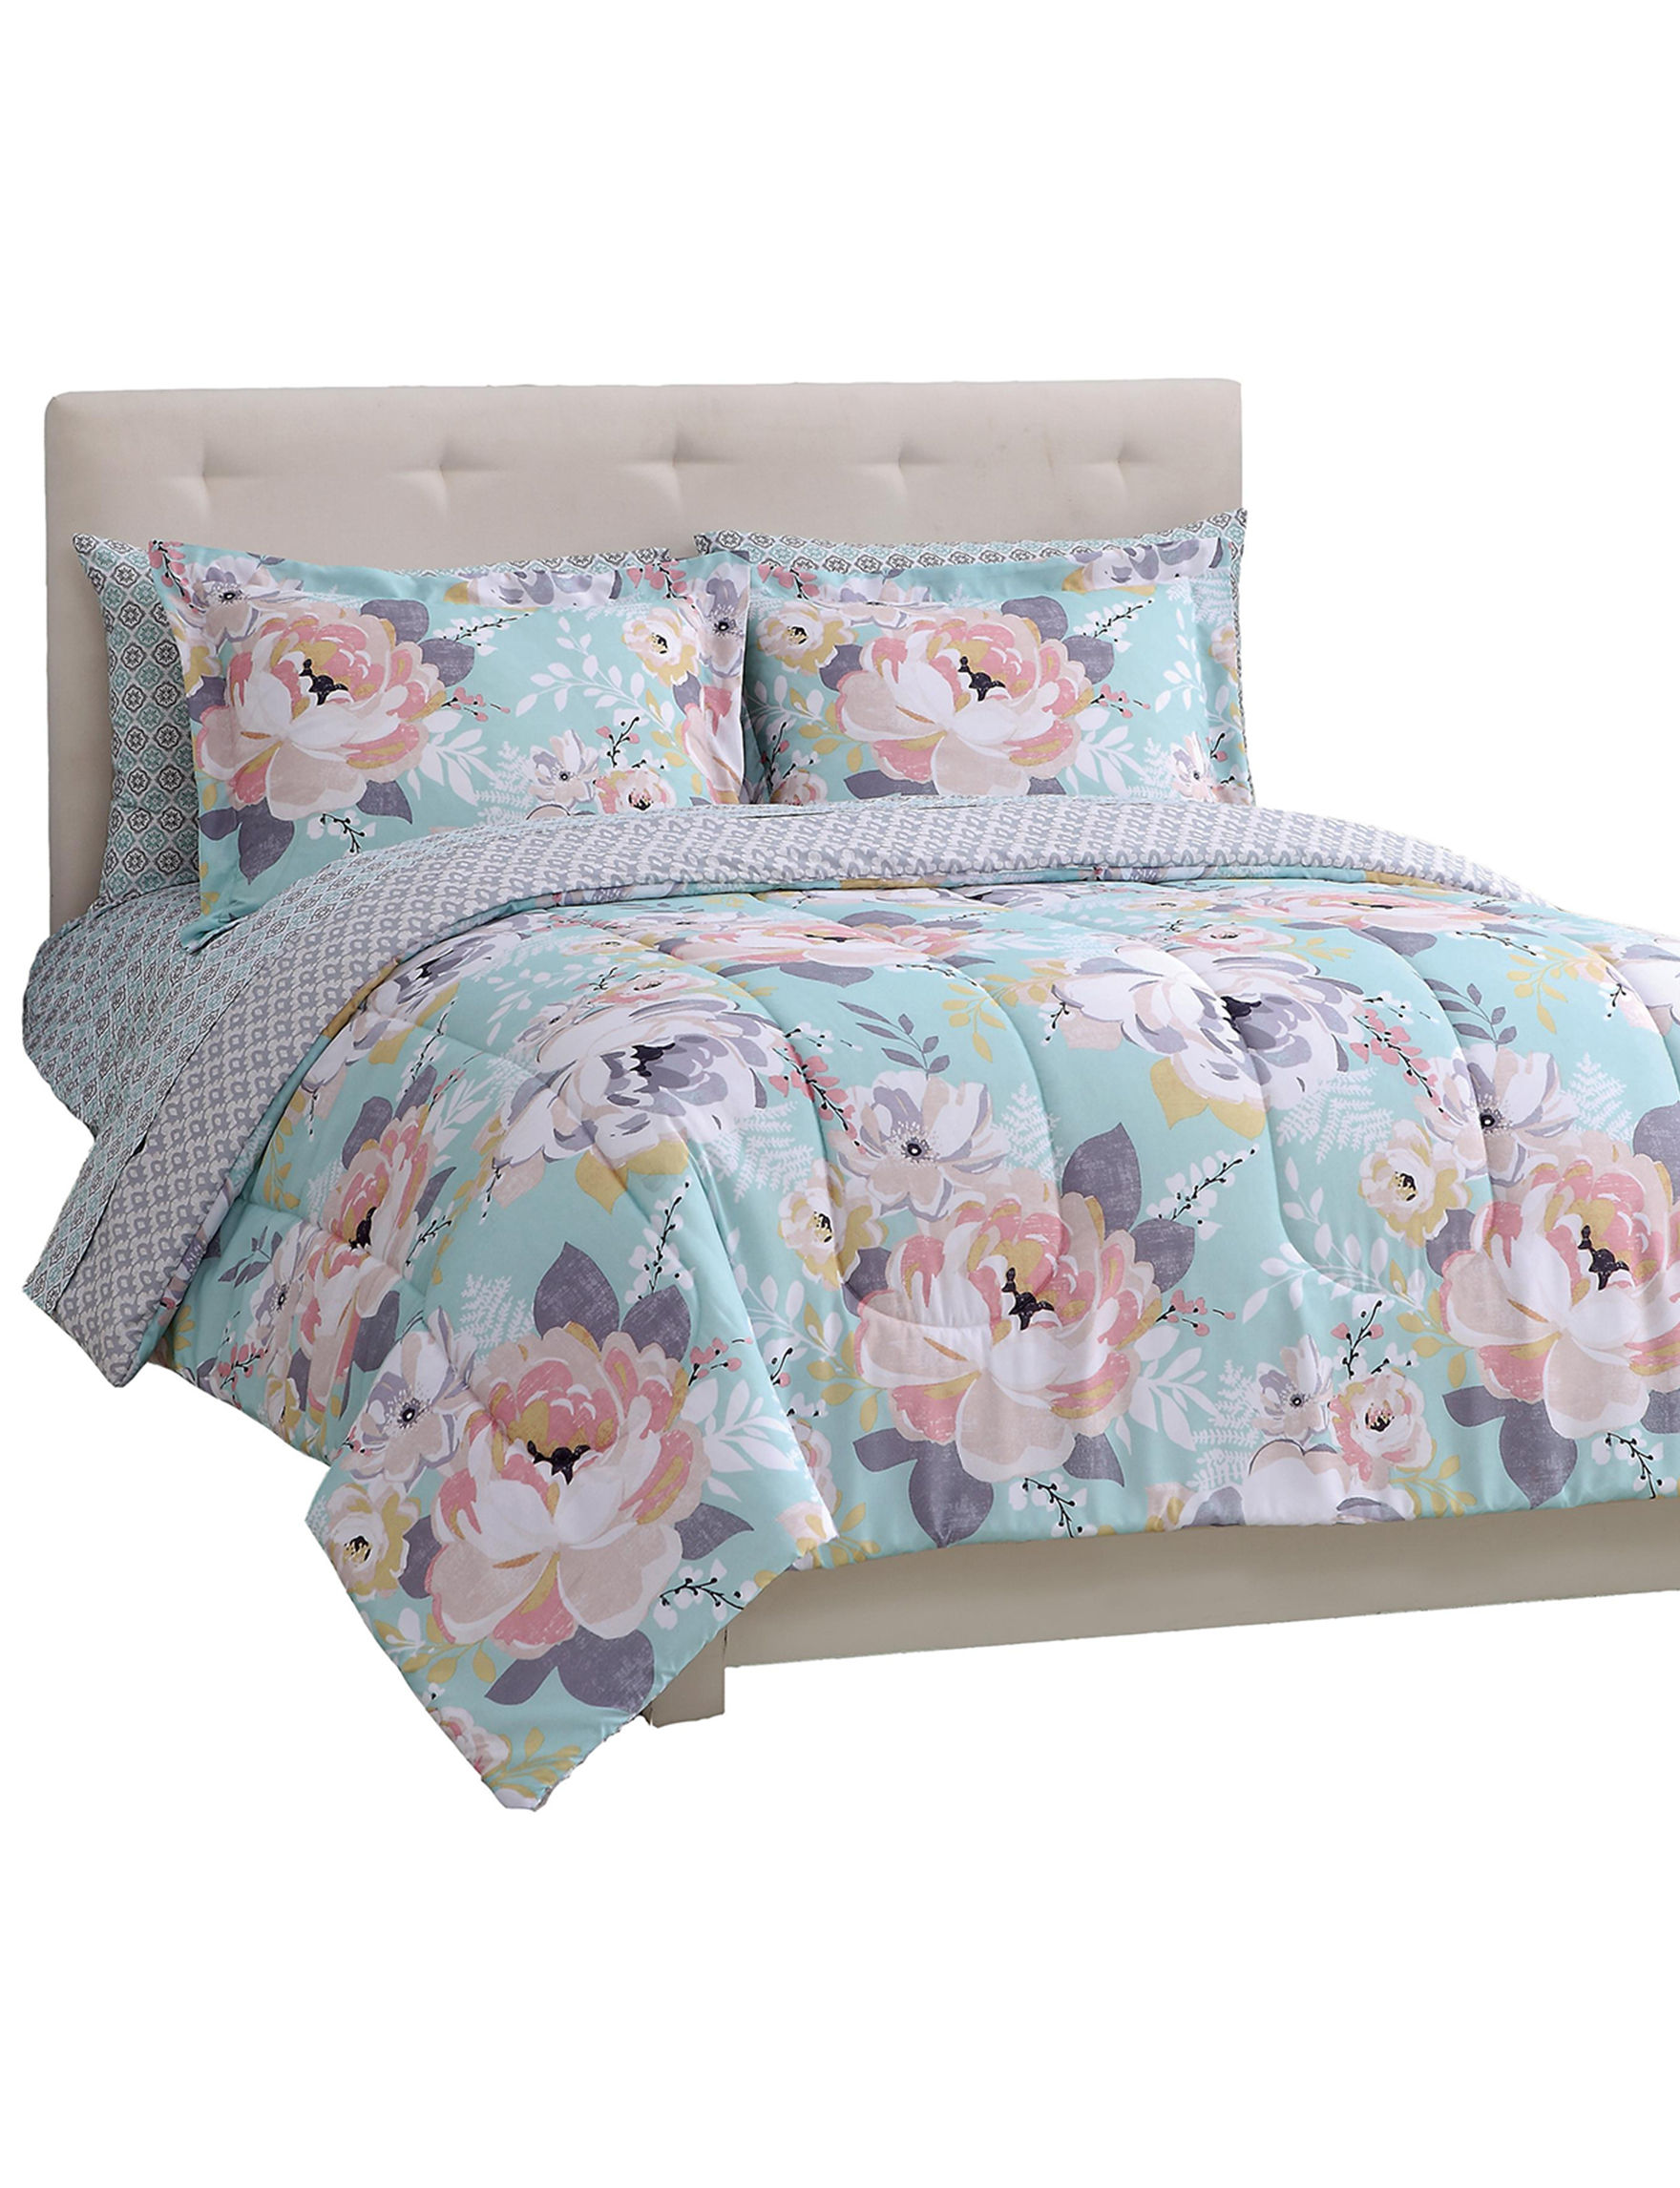 beach day piece gardens comforters peach and comforter bedspreads sets homes set better